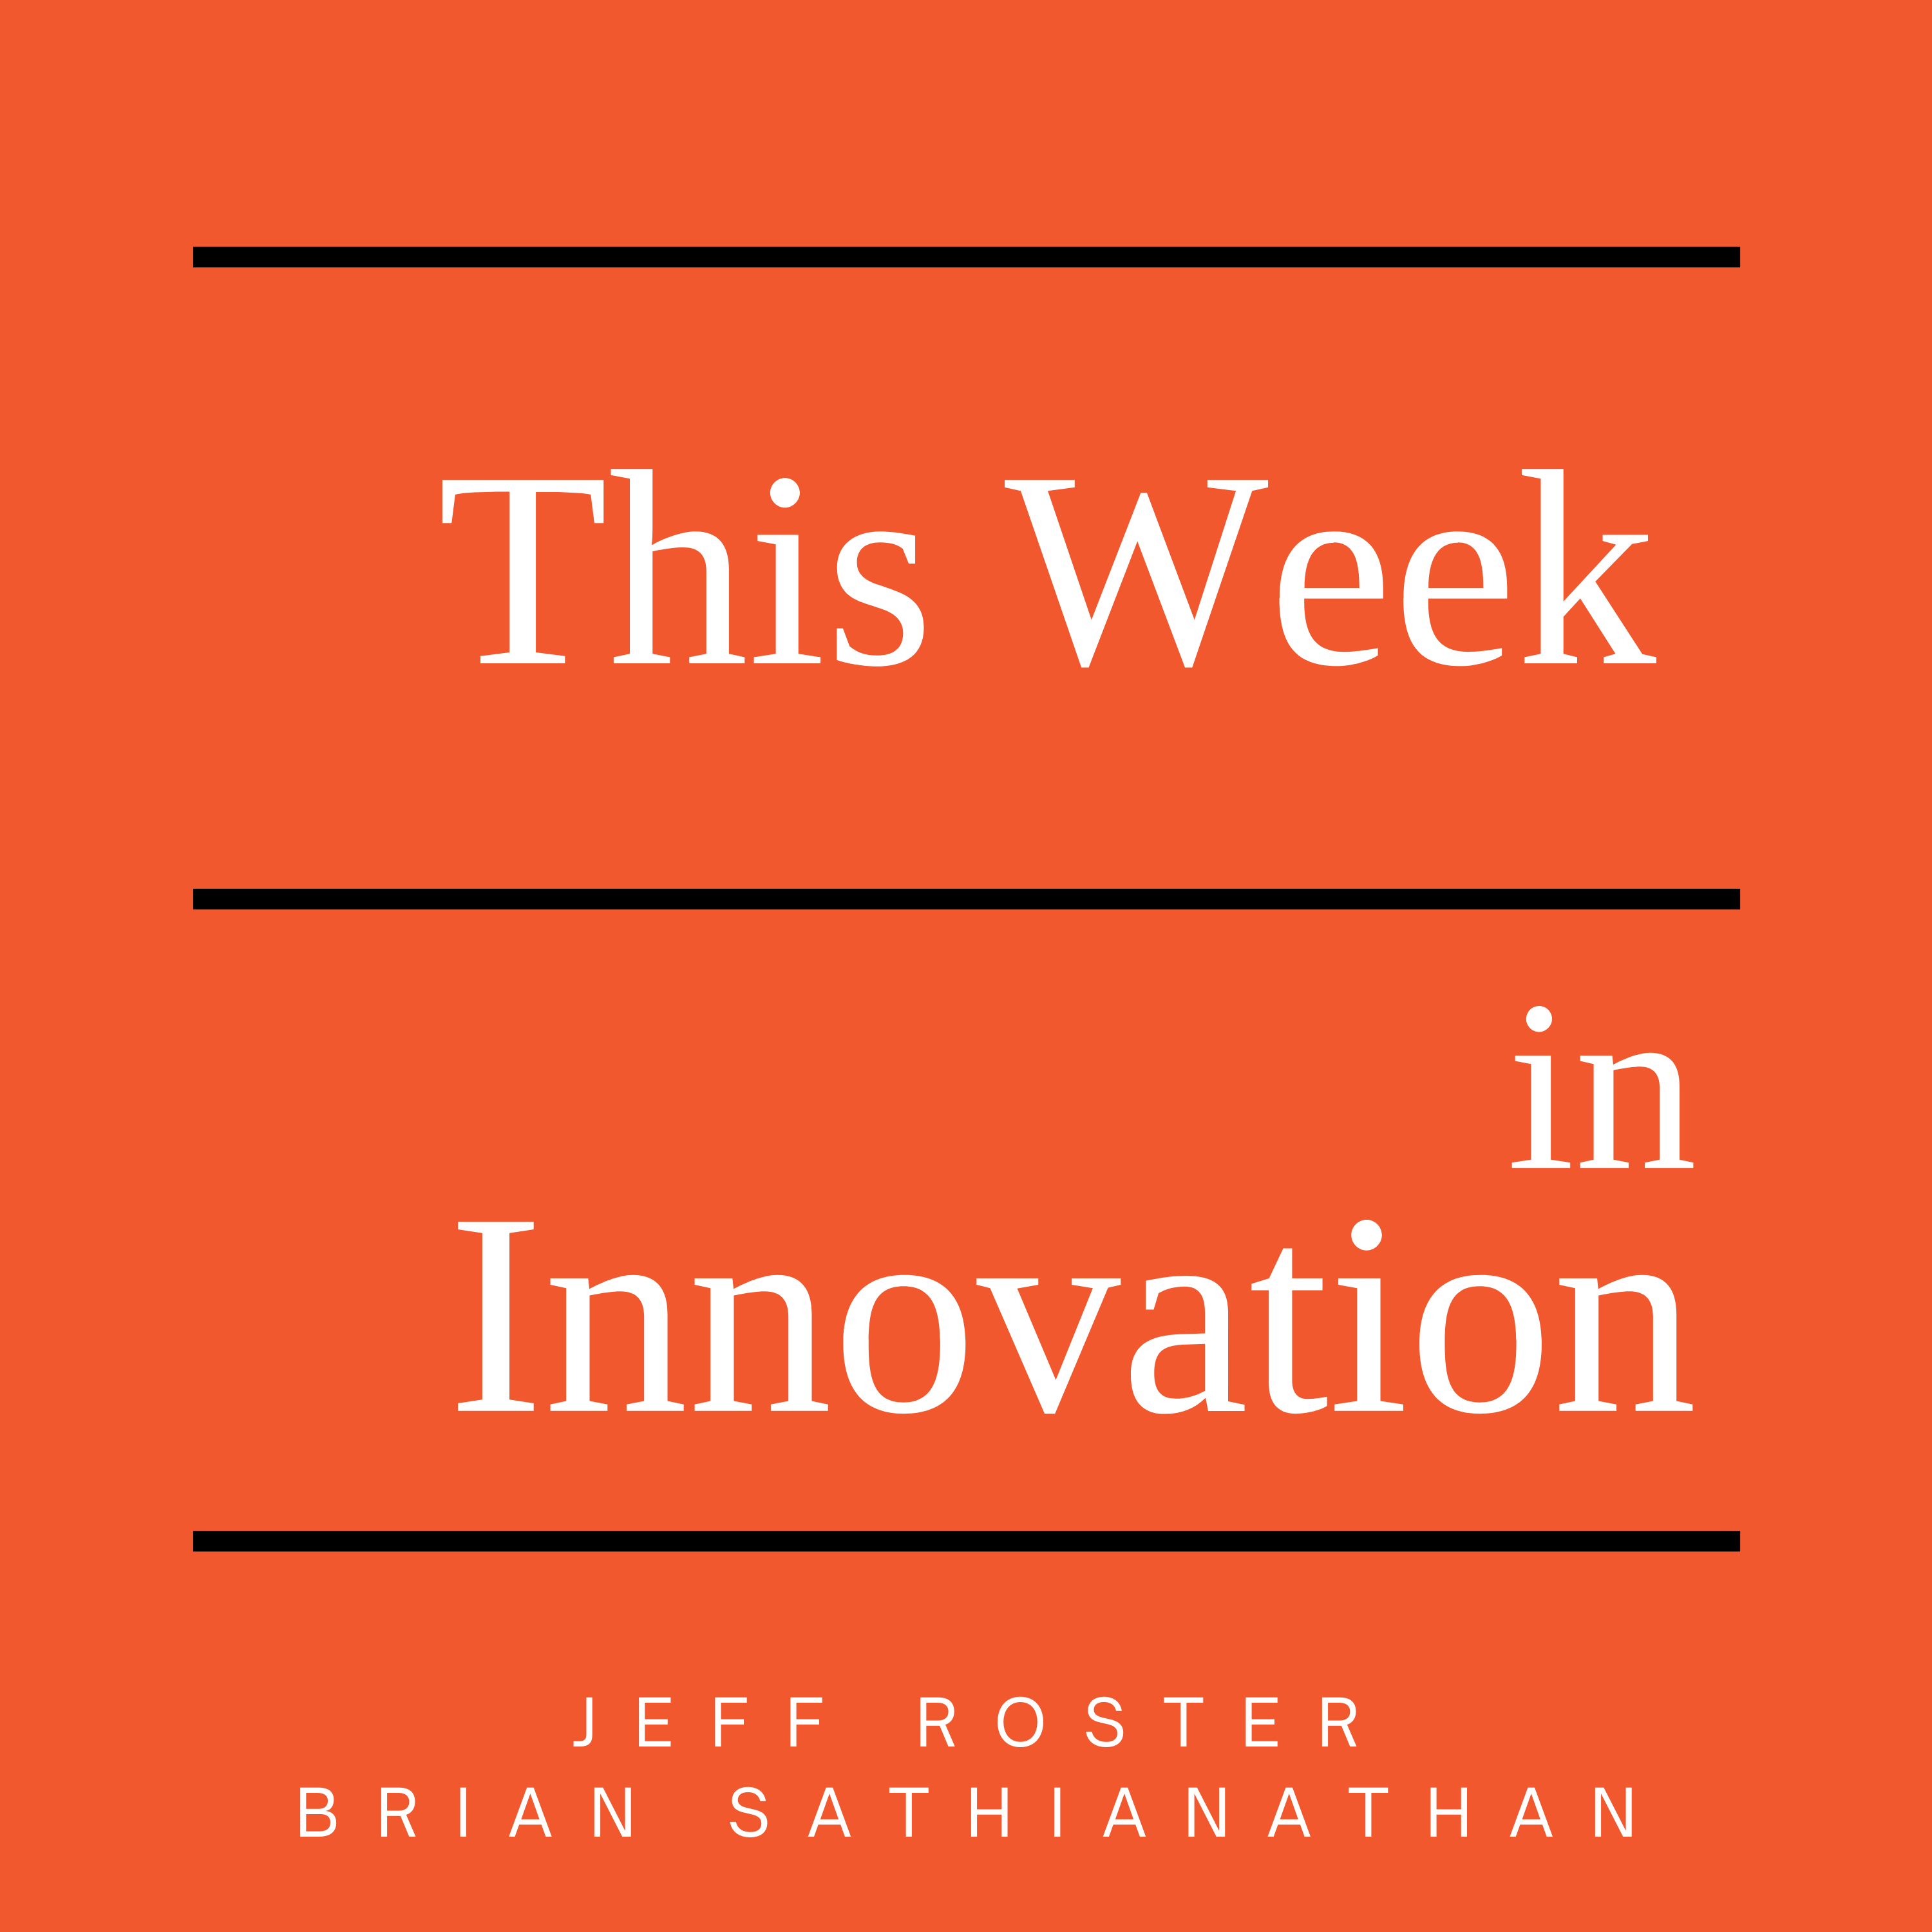 This Week in Innovation